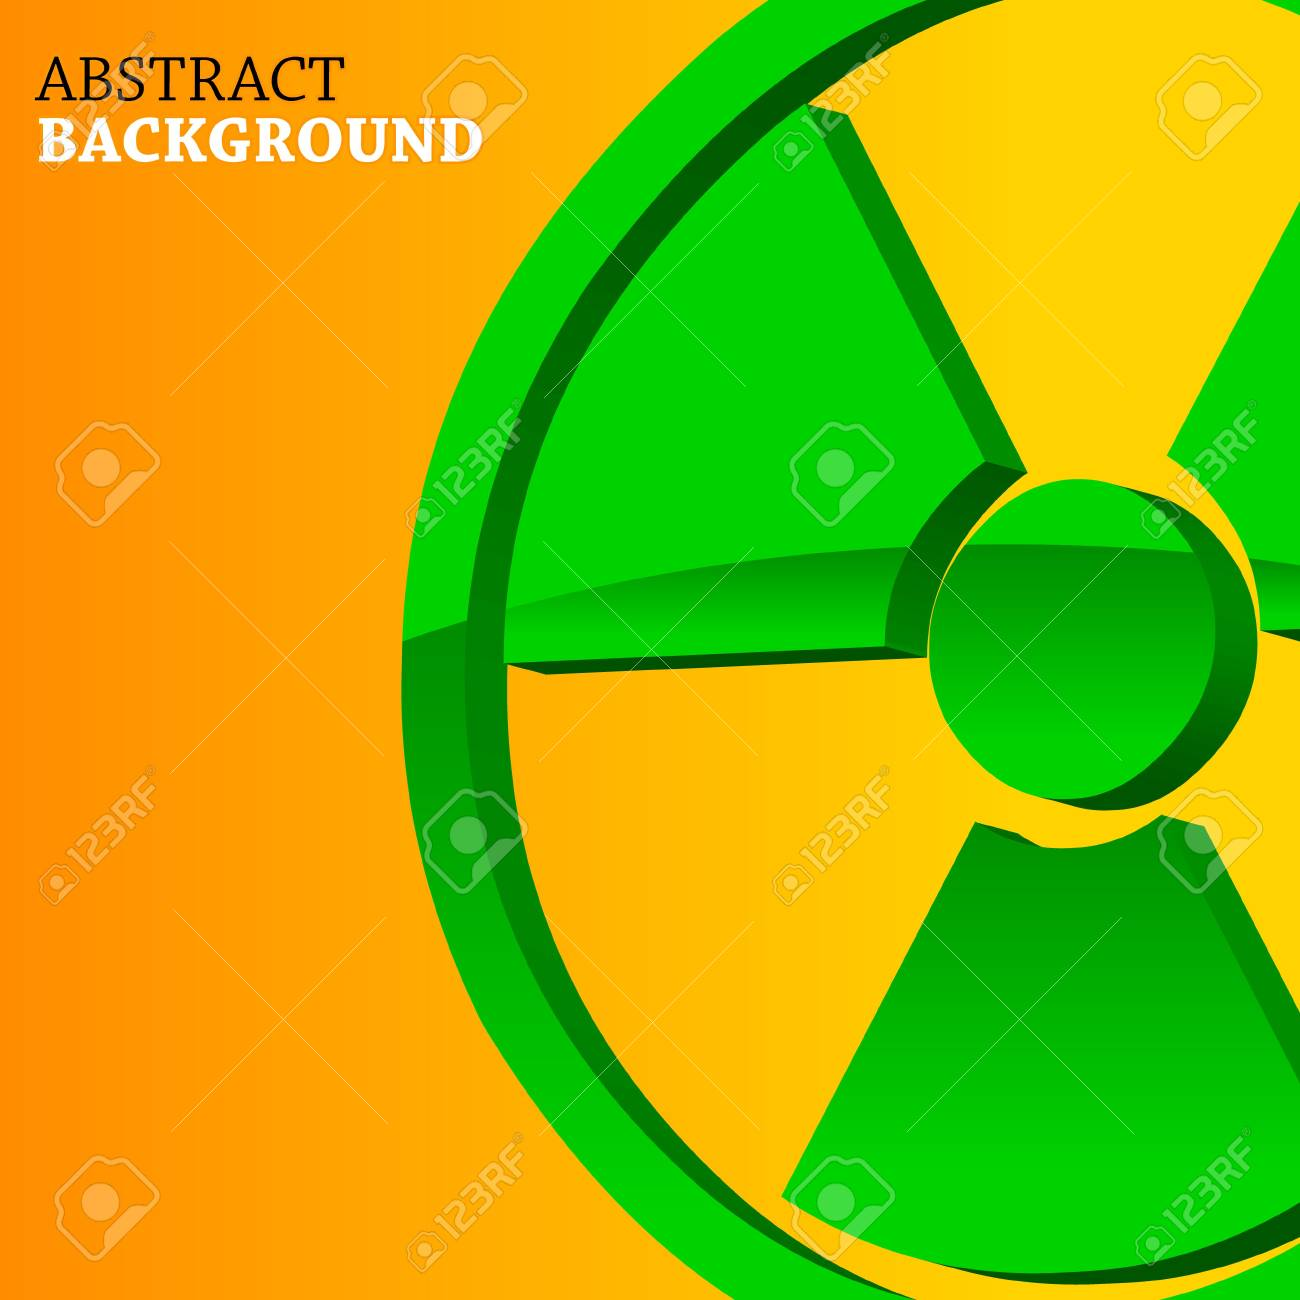 Abstract background with a nuclear symbol in a unique style Stock Vector - 20588824